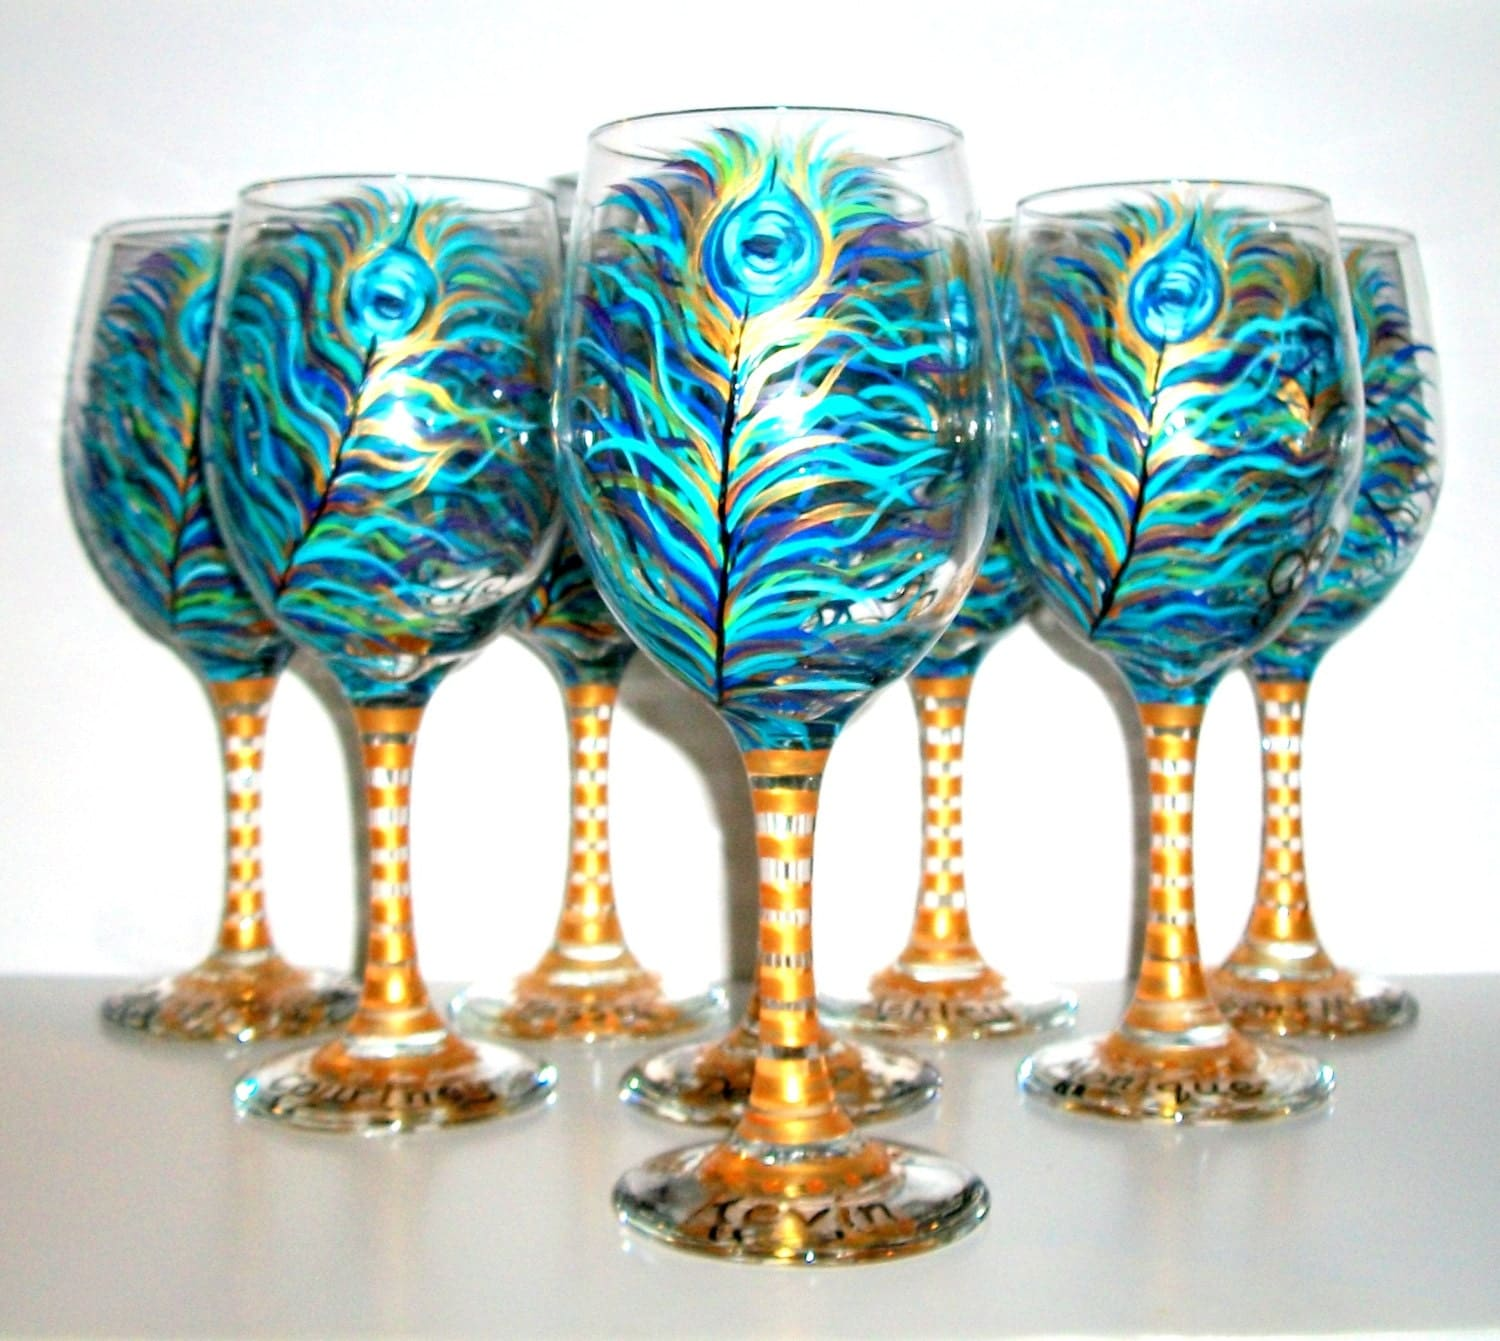 Peacock feather bridesmaids wine glasses hand painted set of 8 Images of painted wine glasses